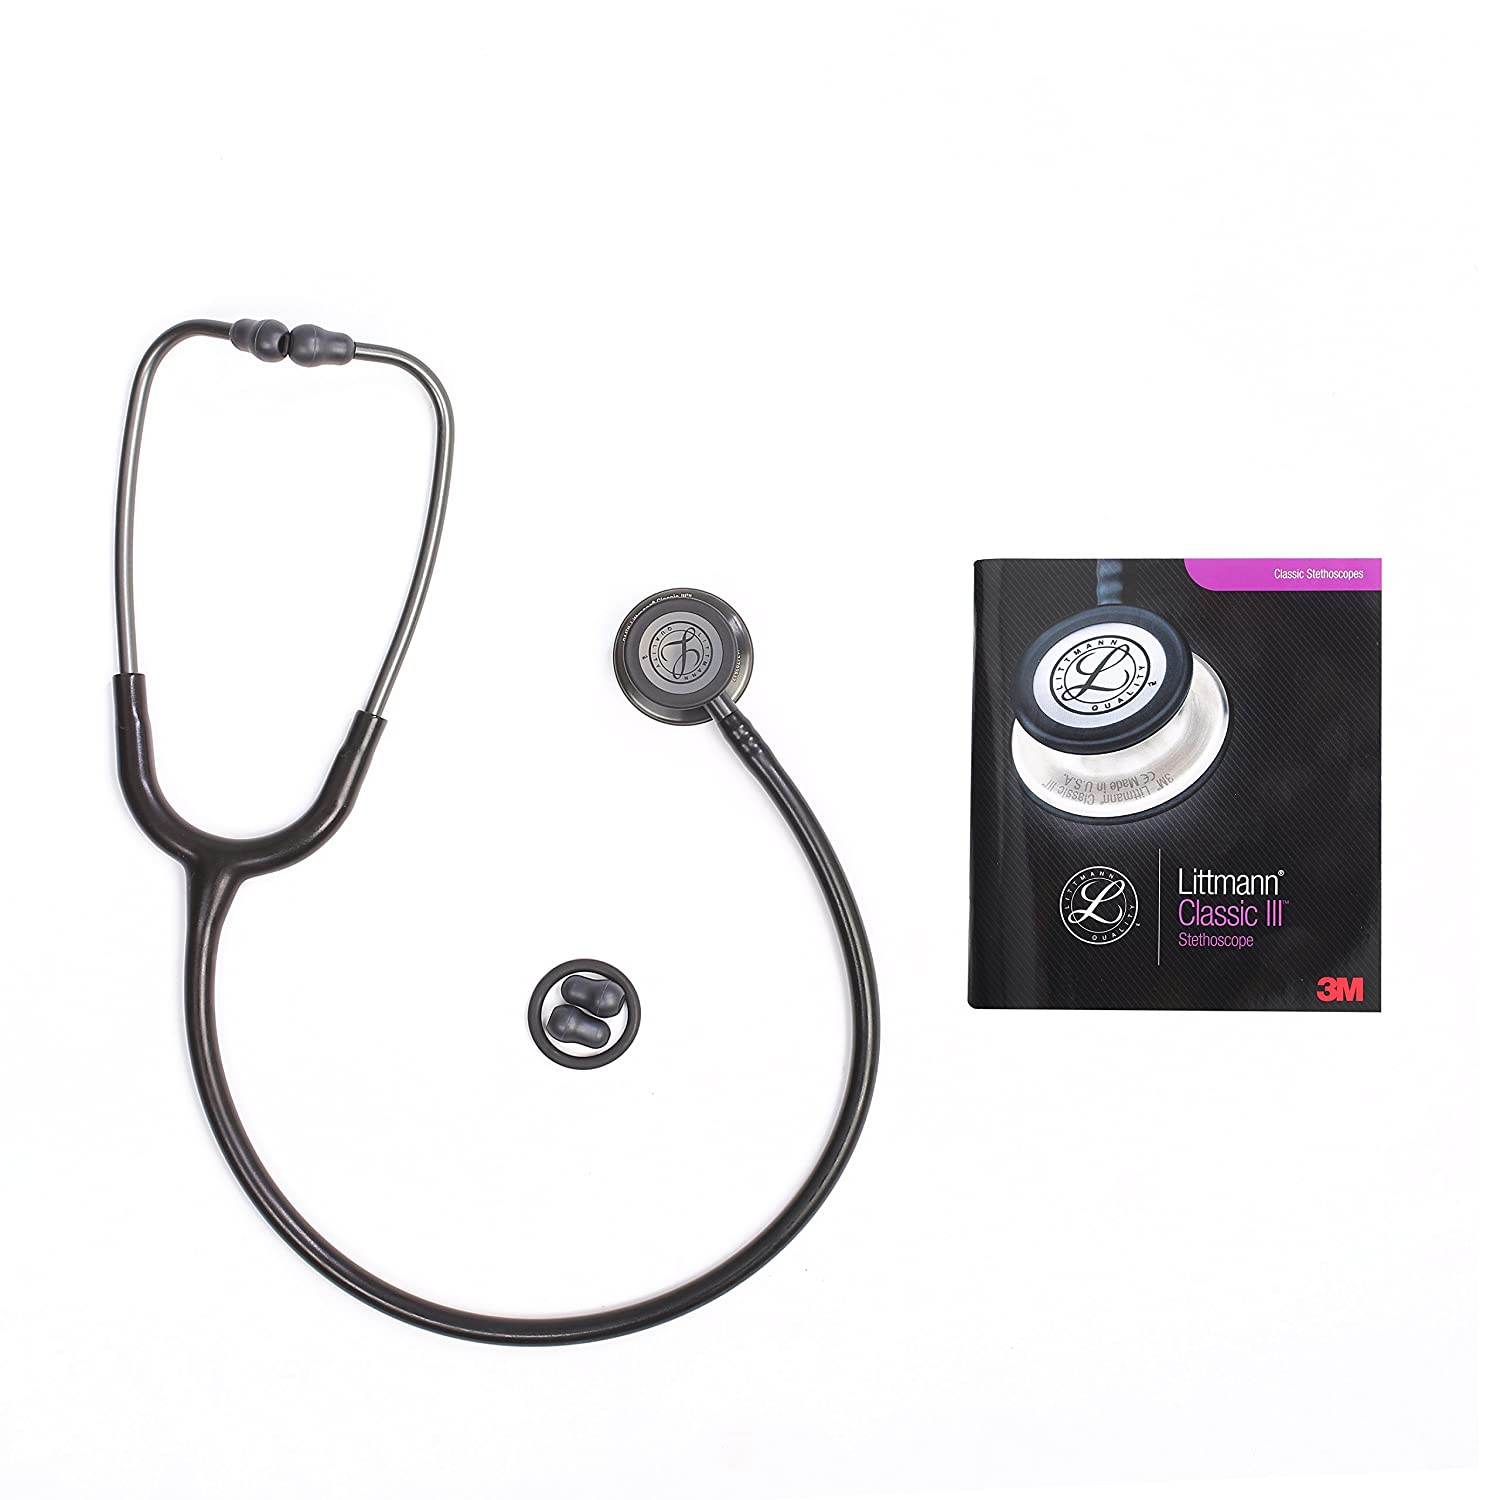 Classic III Stethoscope, for Children and Adult 5620 Black Stainless